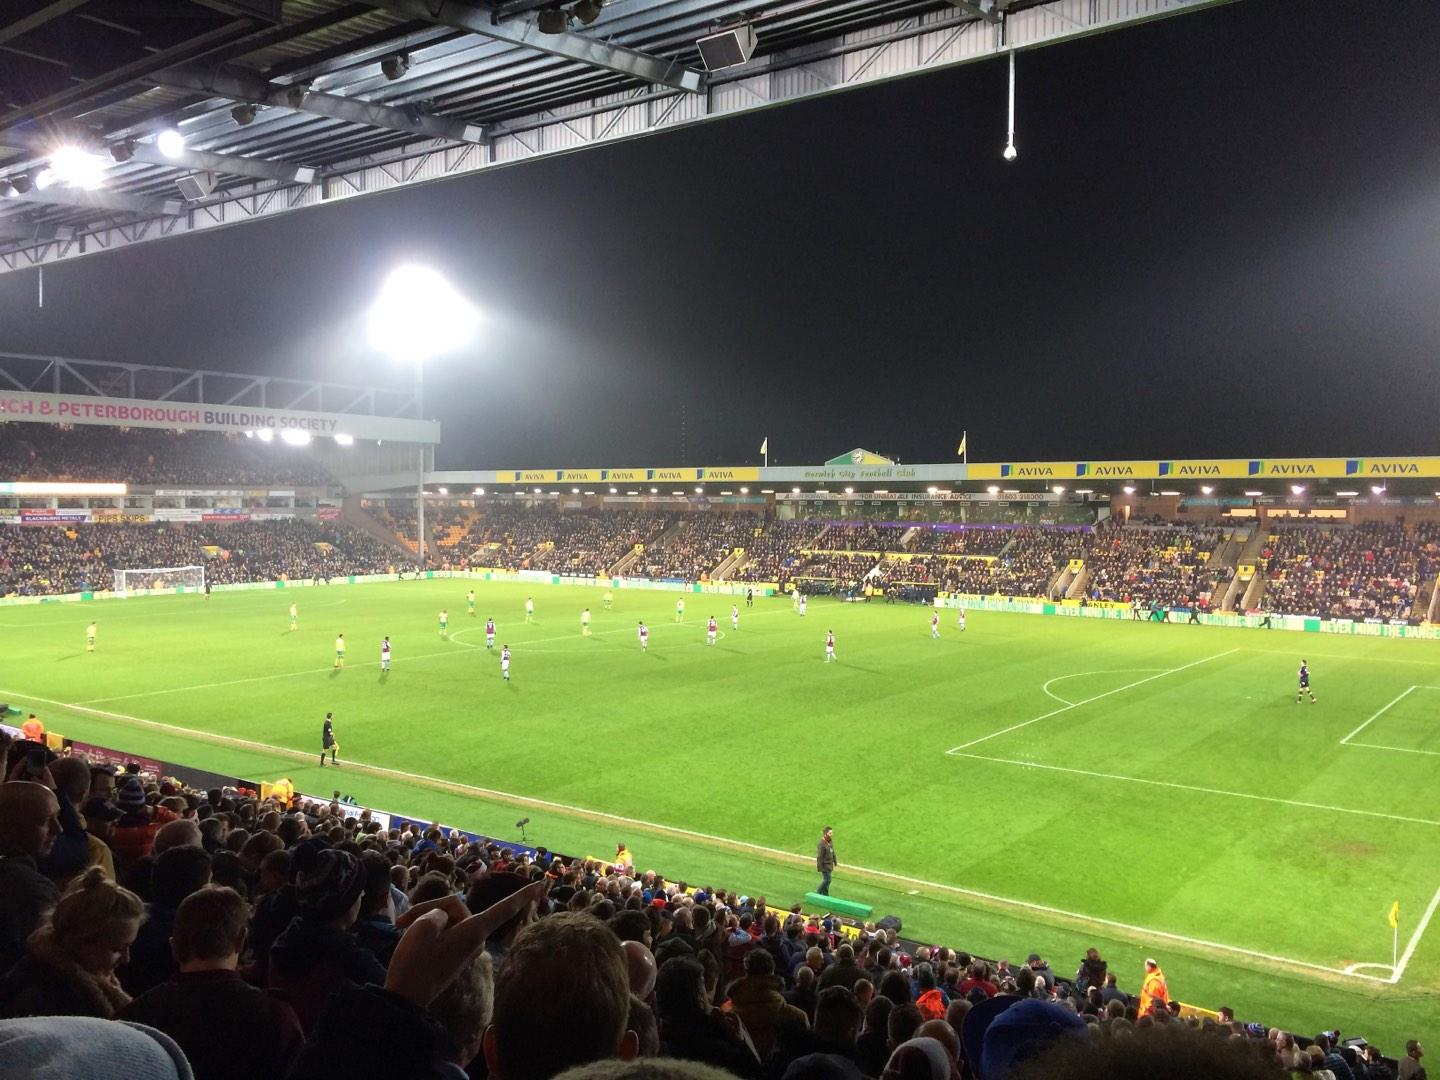 Carrow Road Section F Row CC Seat 3